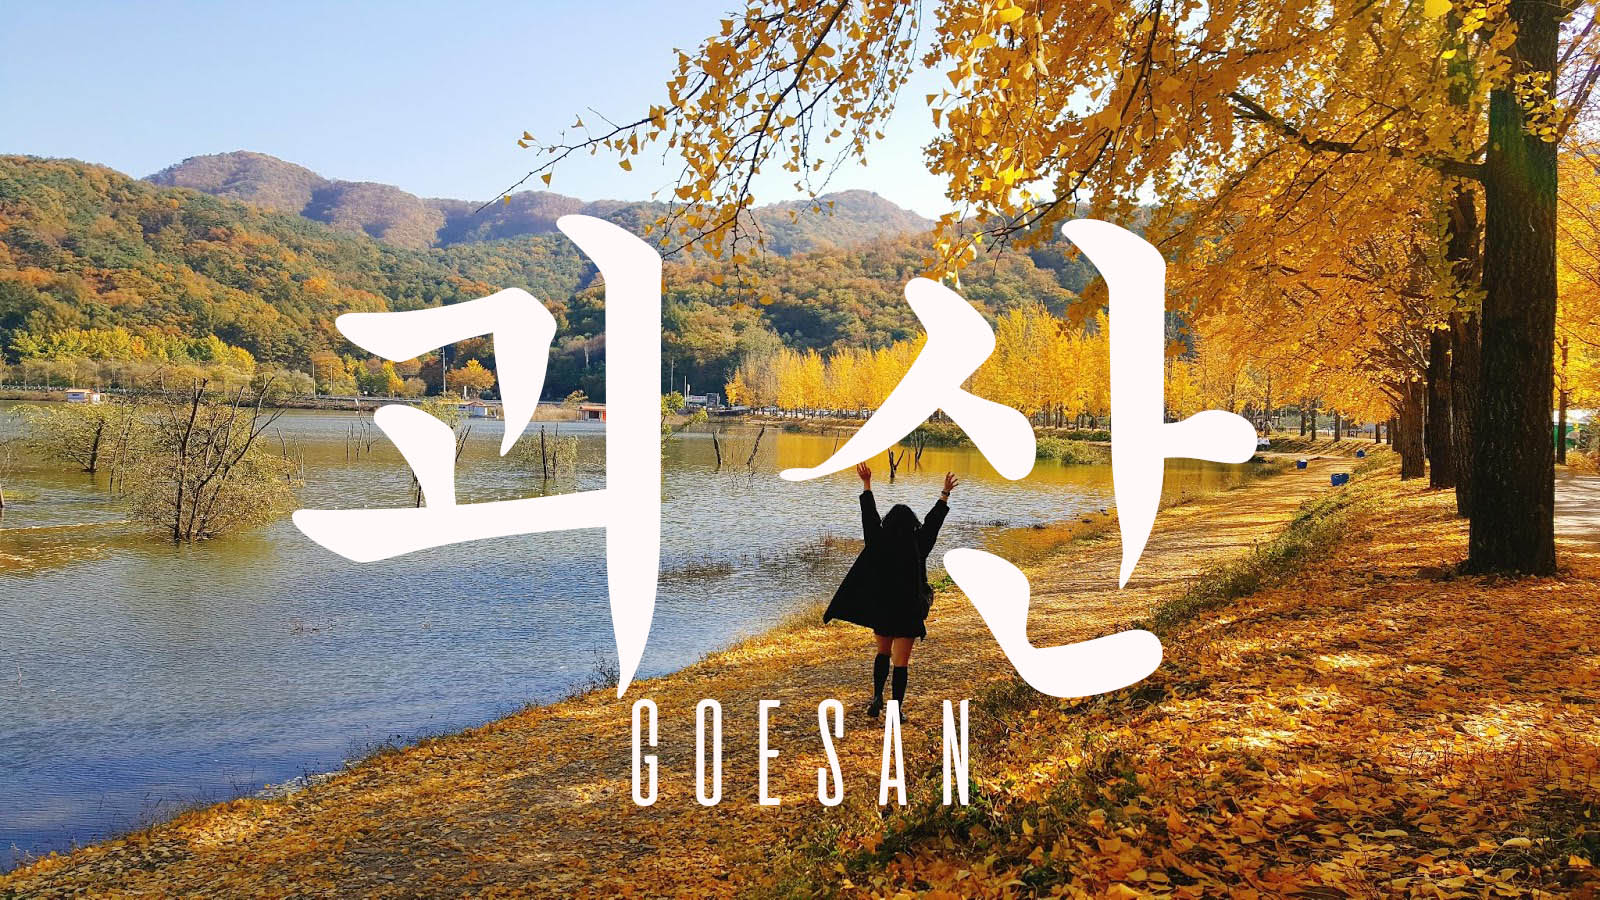 goesan itinerary